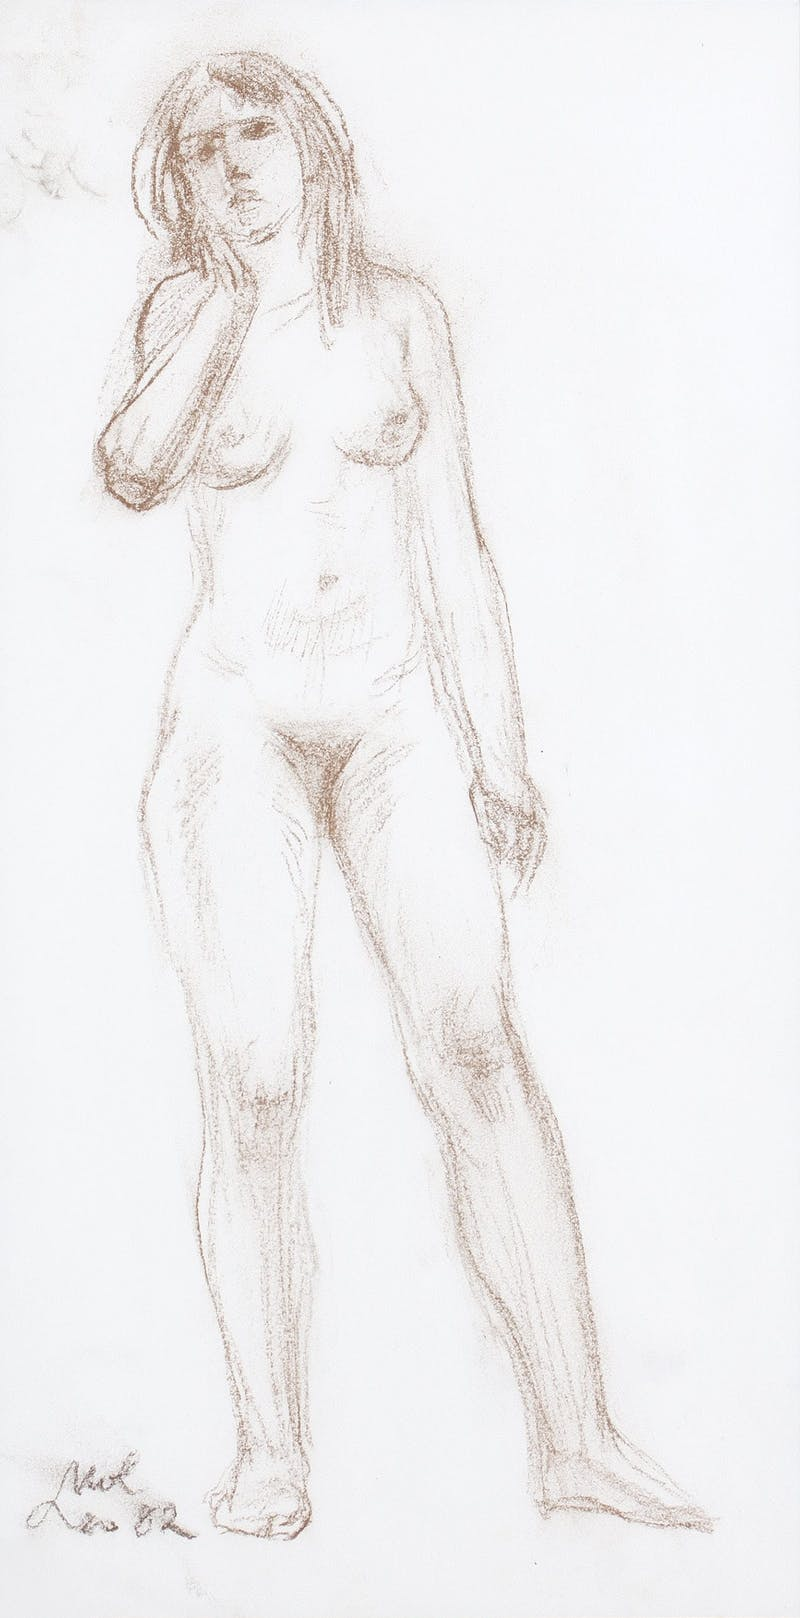 Recollection by Leo Mol, 1982 Conte Crayon on Paper - (16x8 in)